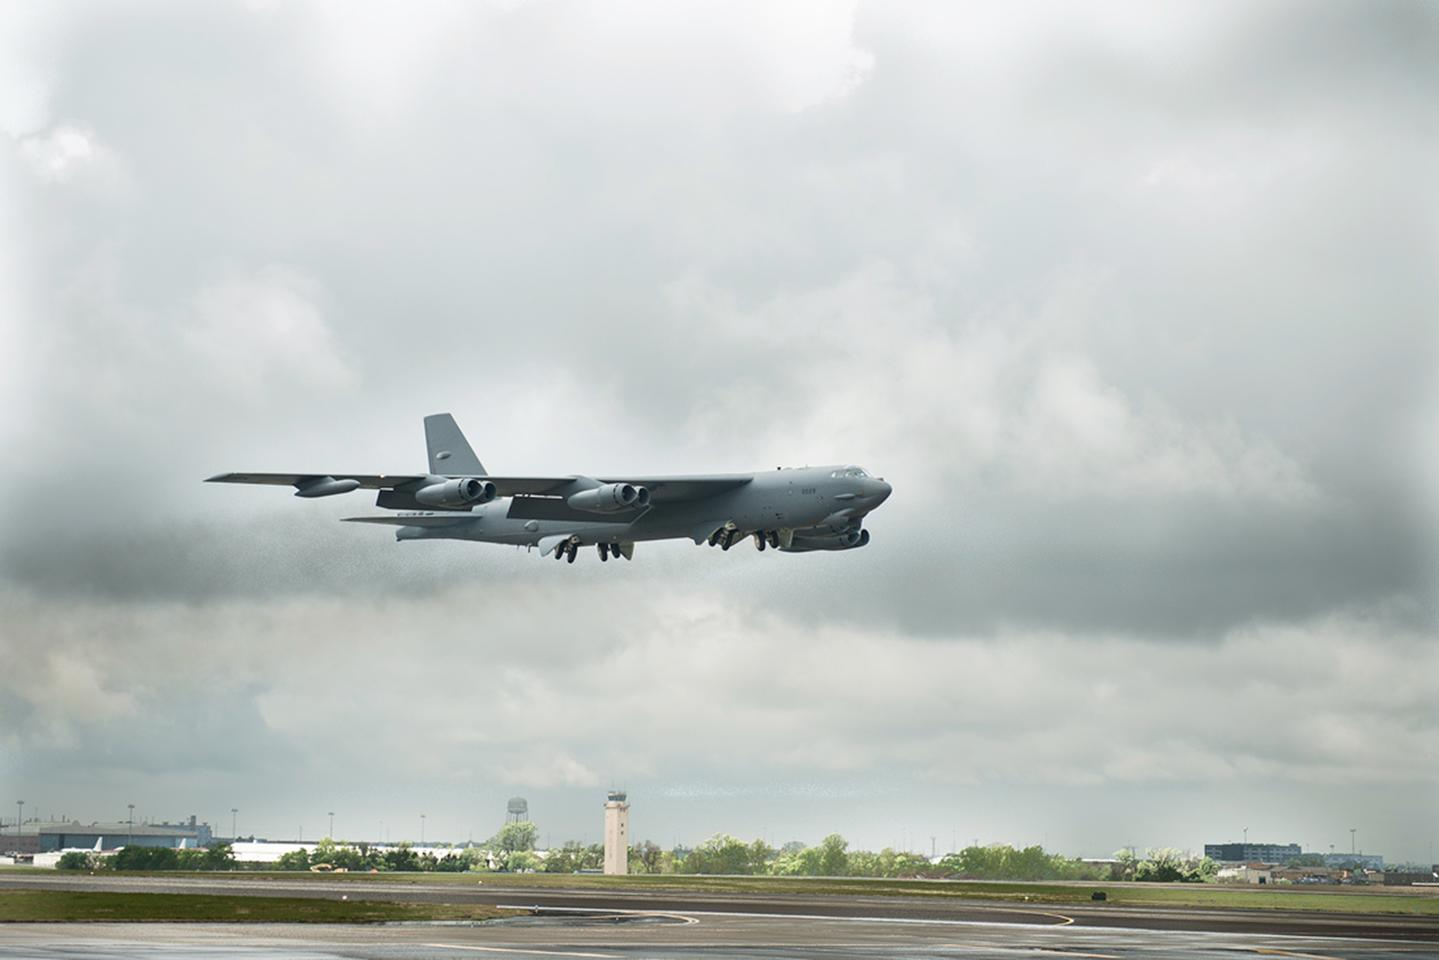 The first B-52 with Boeing's CONECT communications system has been rolled out to the US Air Force